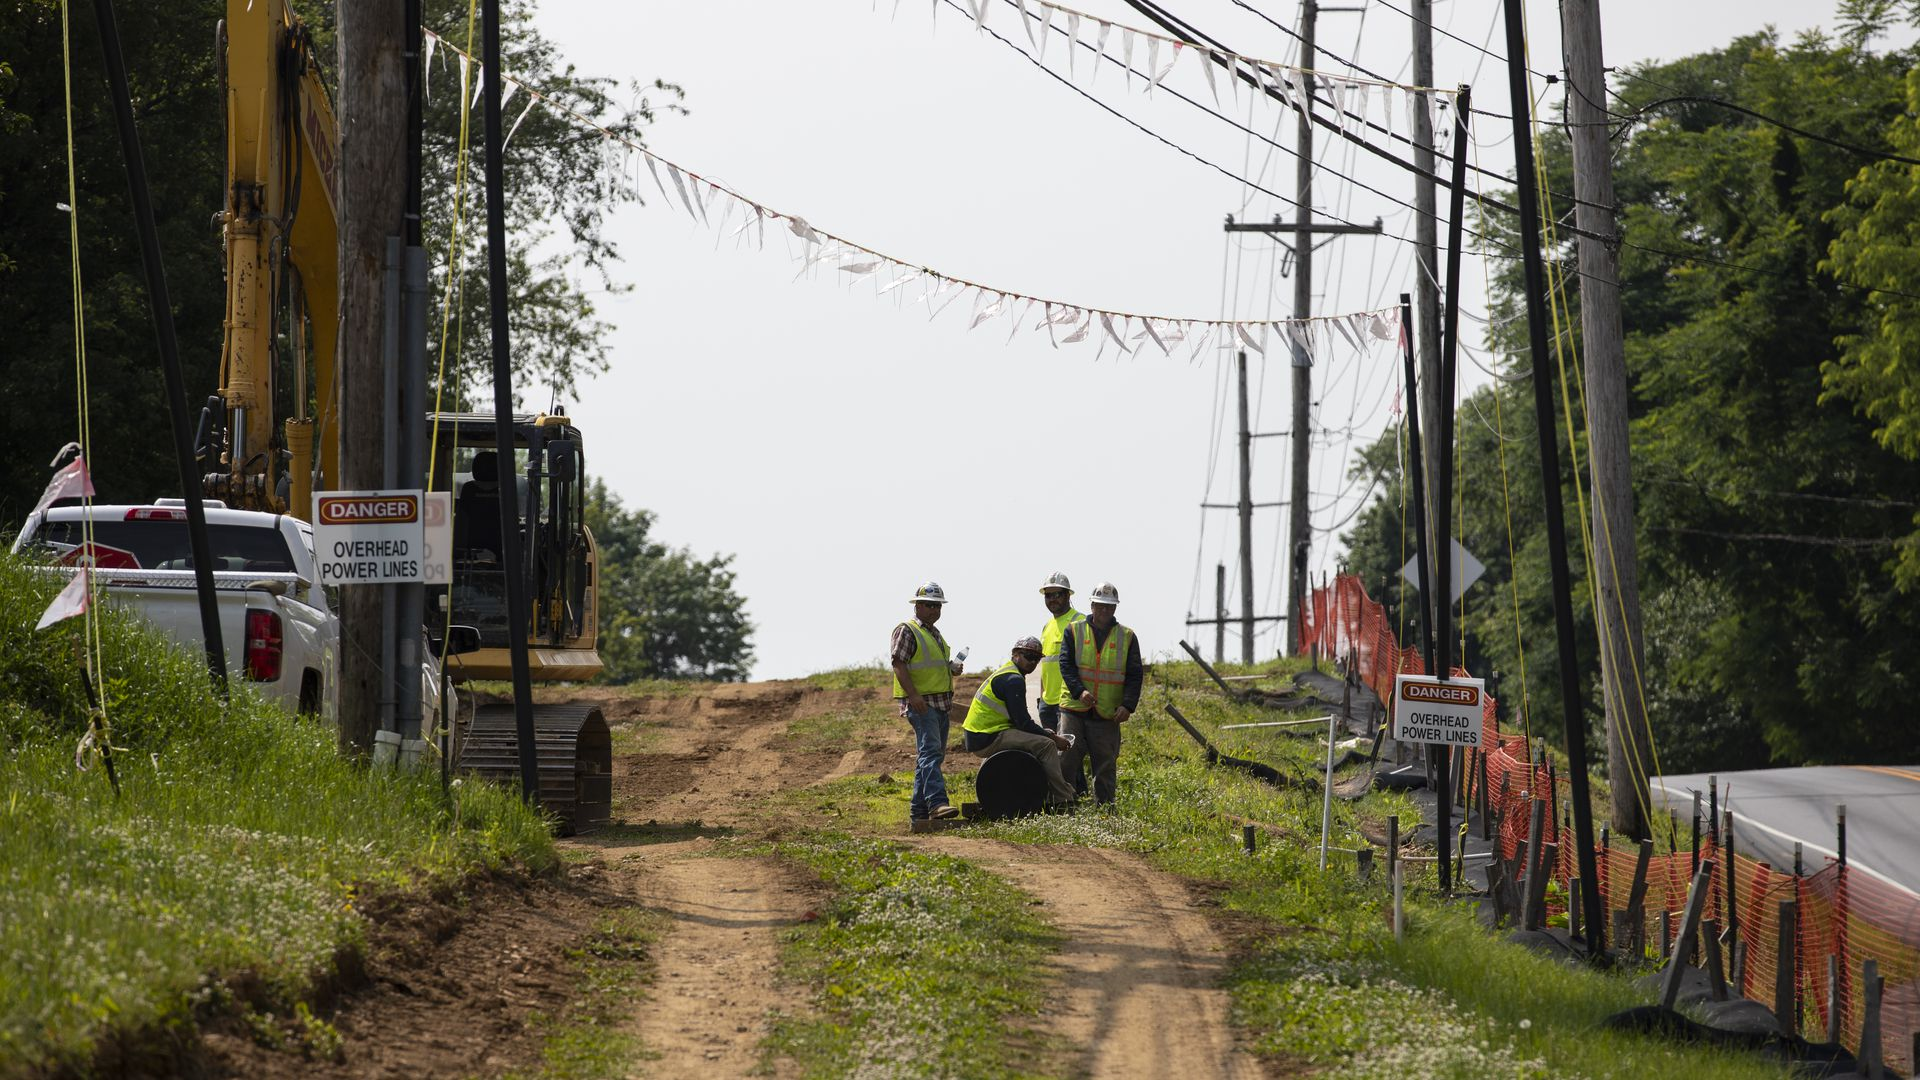 In this image, construction workers stand on a dirt road near a paved road.